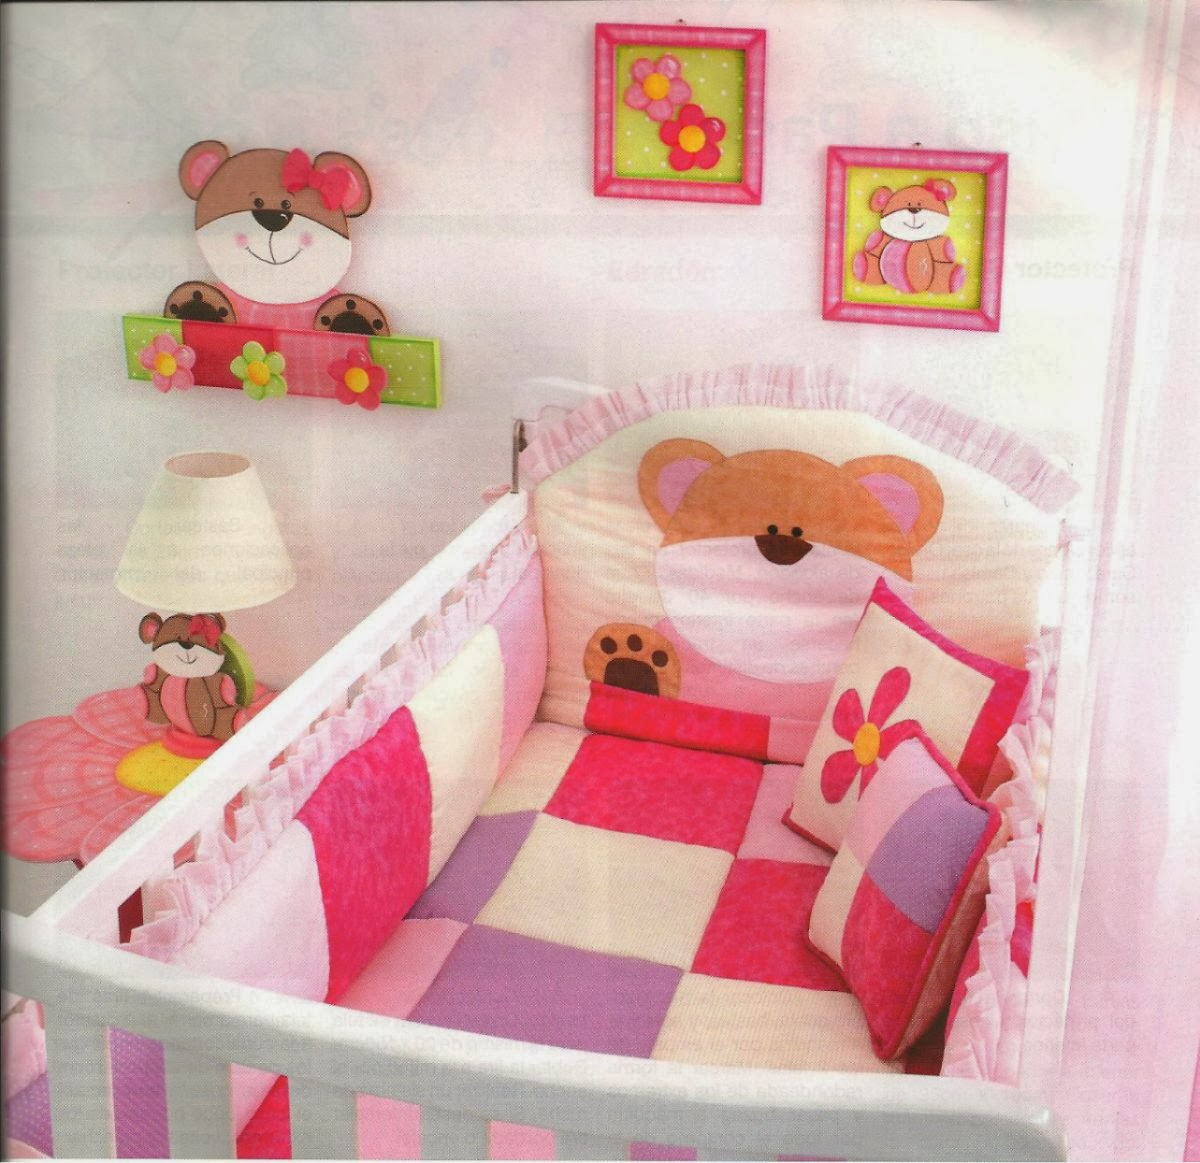 Imagenes fantasia y color como decorar el cuarto del bebe for Decoracion en la pared para ninas